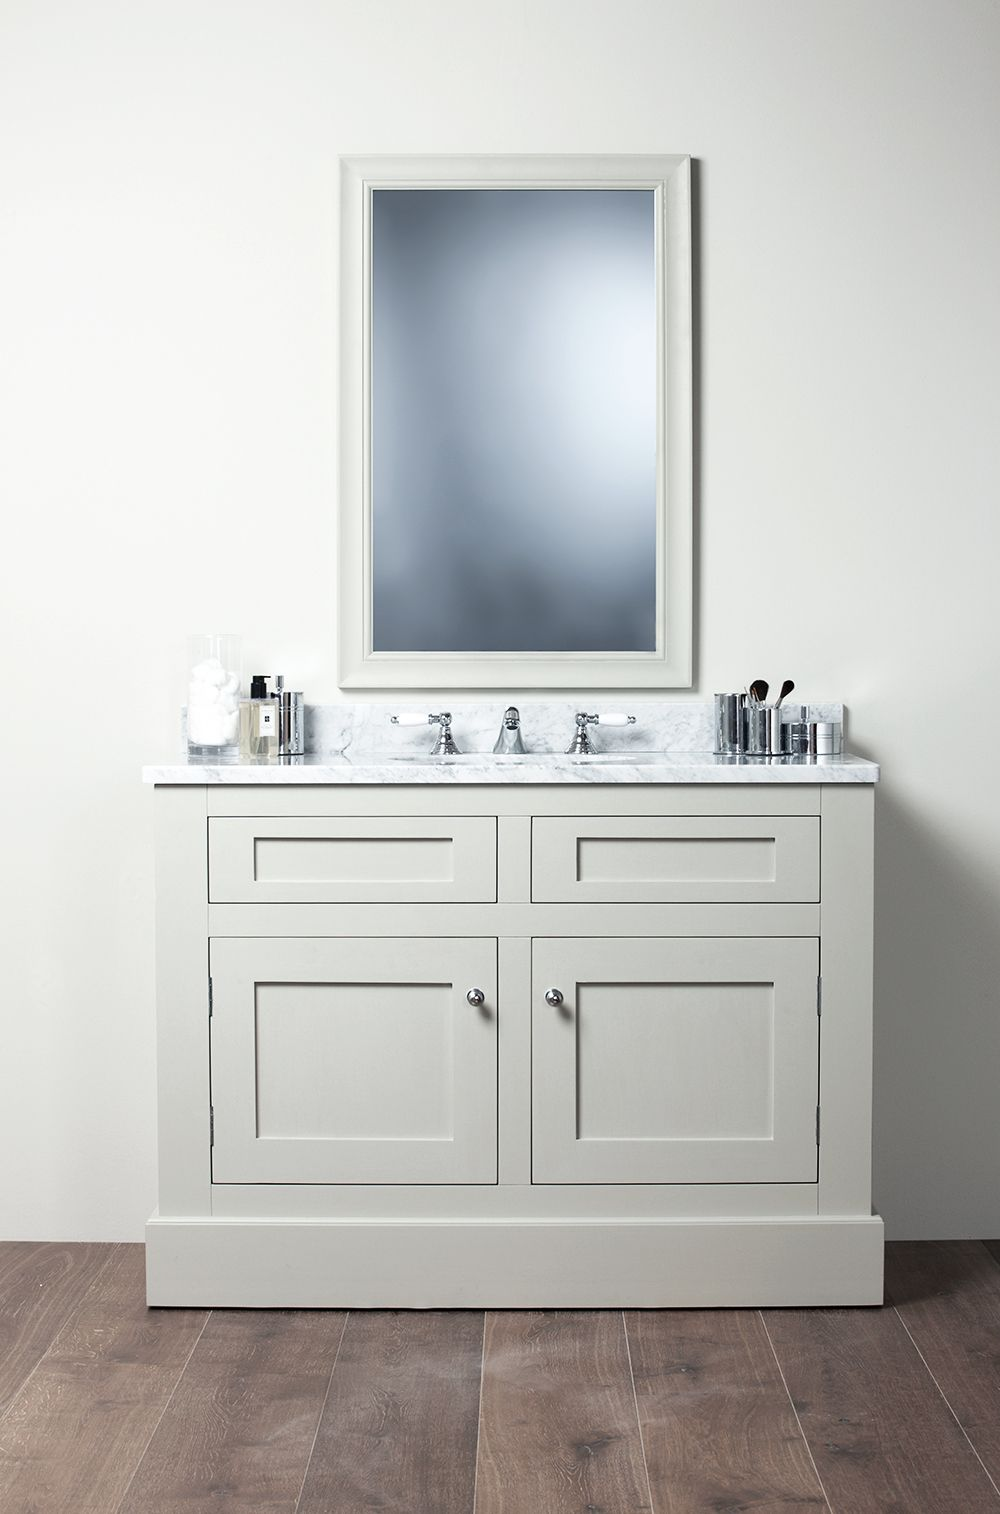 shaker style bathroom vanity unit shaker bathroom vanity unit under sink cabinet ebay home - Shaker Home Ideas